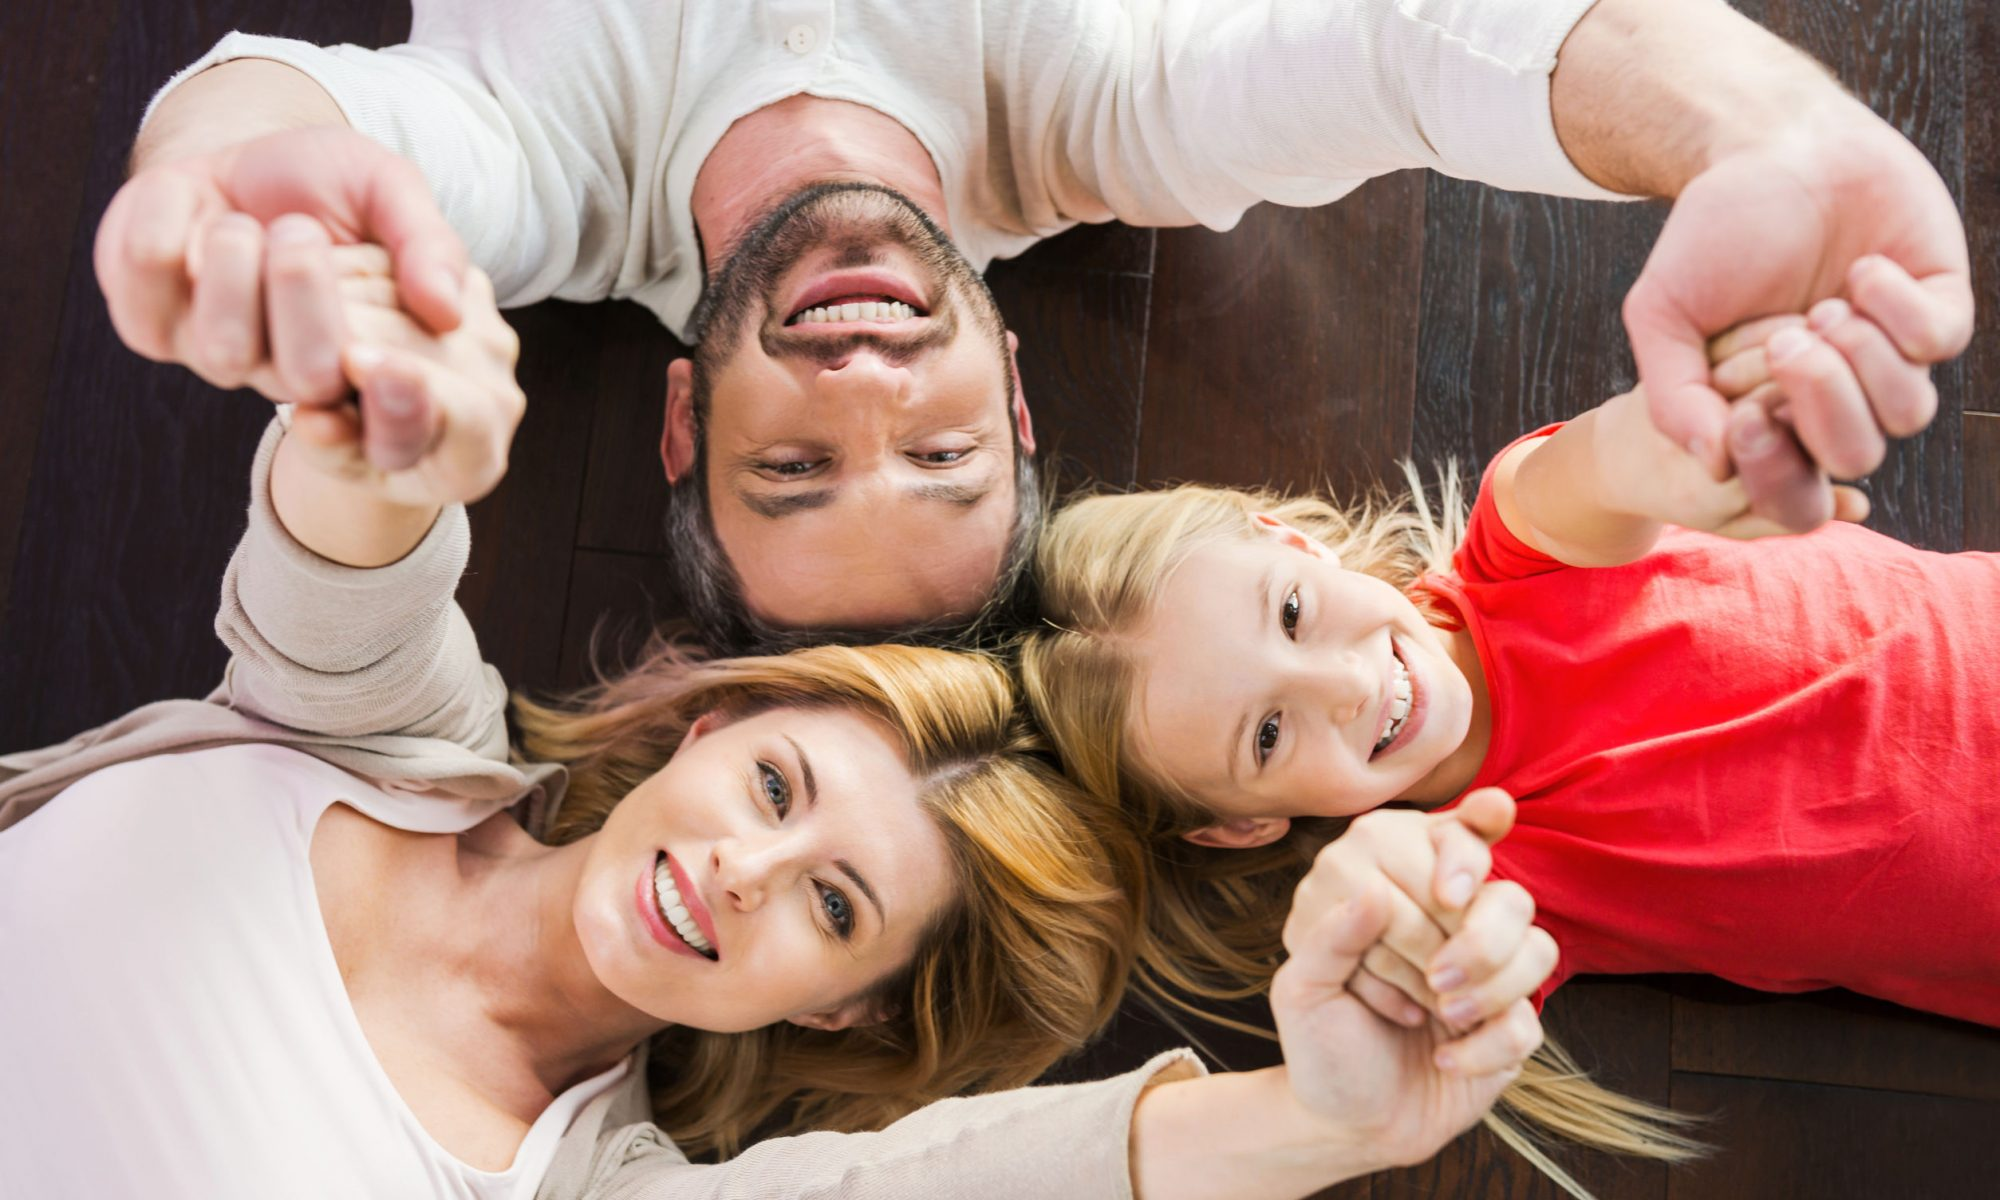 35294022 - happy family together. top view of happy family of three bonding to each other and smiling while lying on the hardwood floor